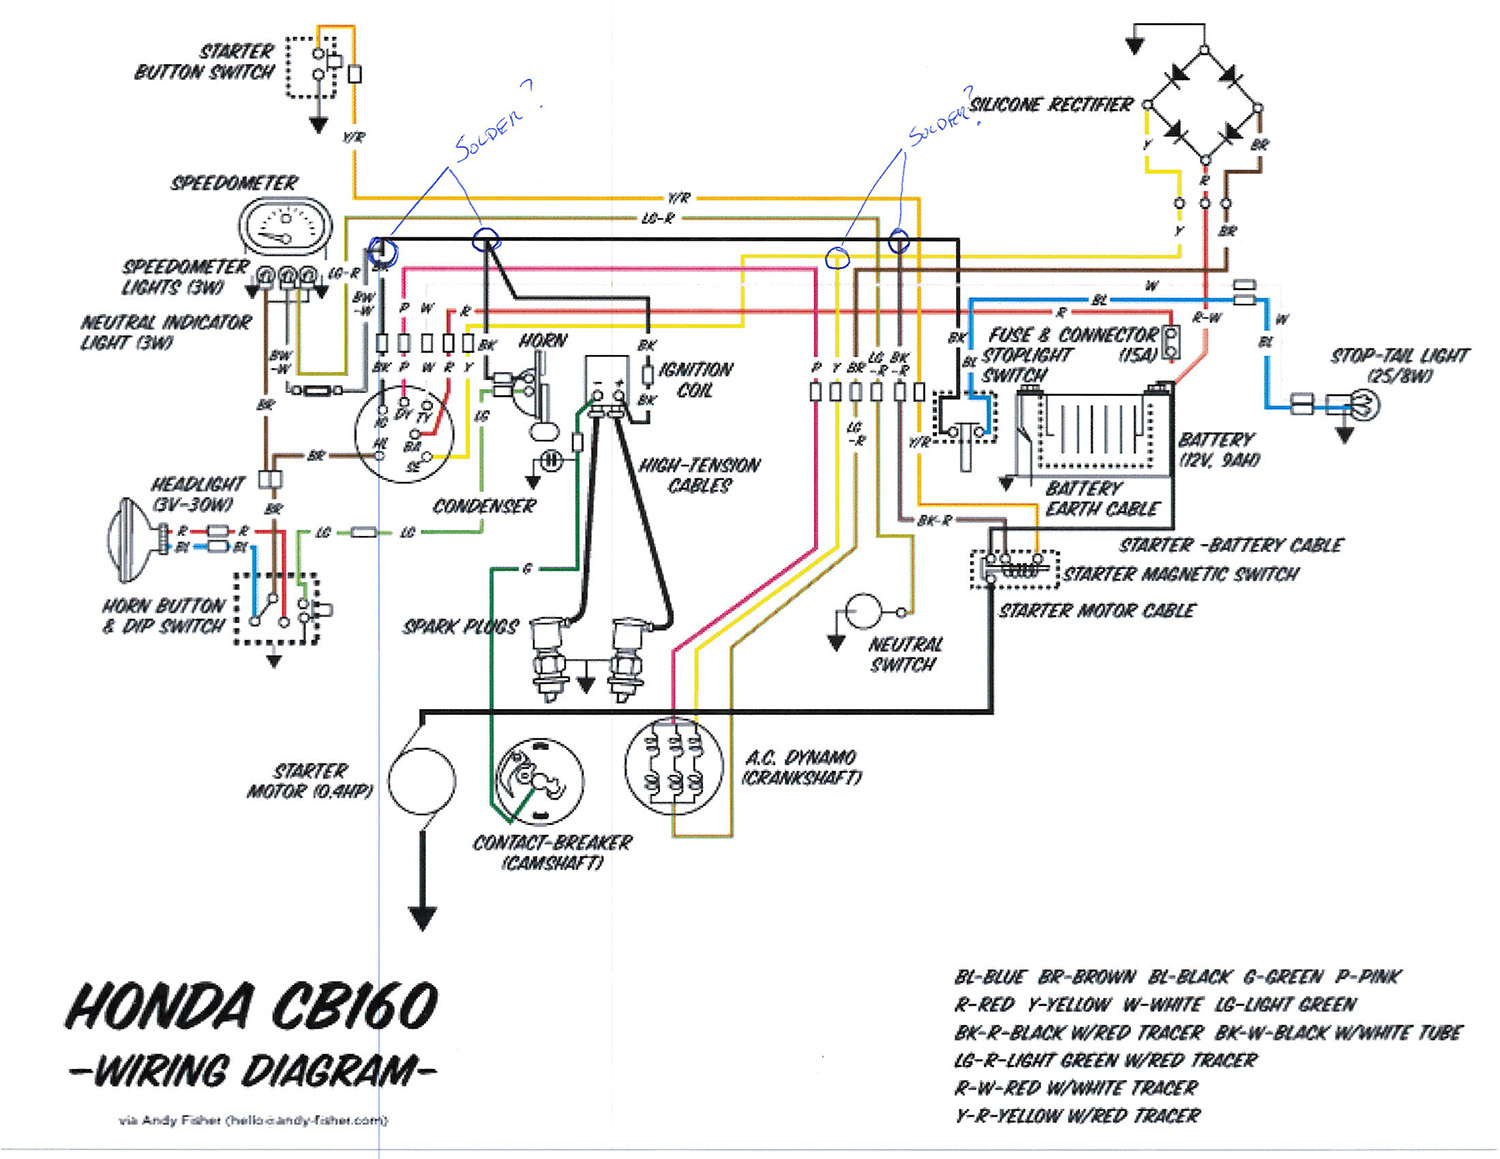 Wiring Harness Cb 160 Trusted Diagram Online Honda 1 Cb160 On Specs